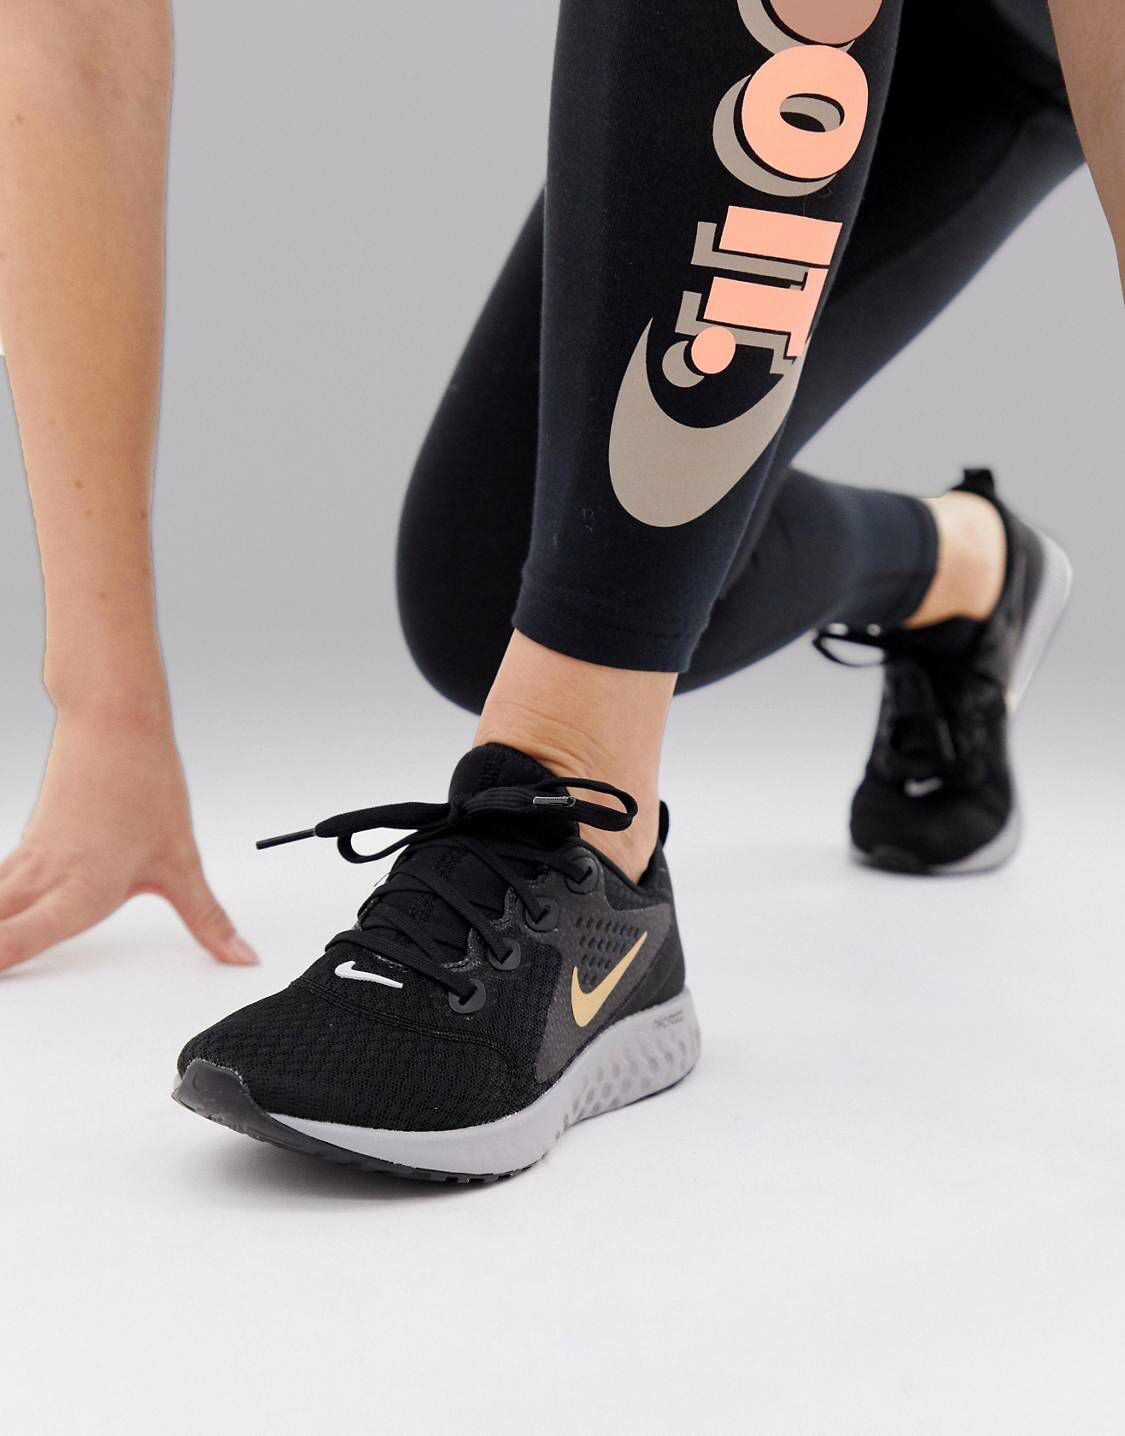 buy popular 436b8 4d3a7 Nike Running Legend React Trainers In Black And Gold | Iphone ...